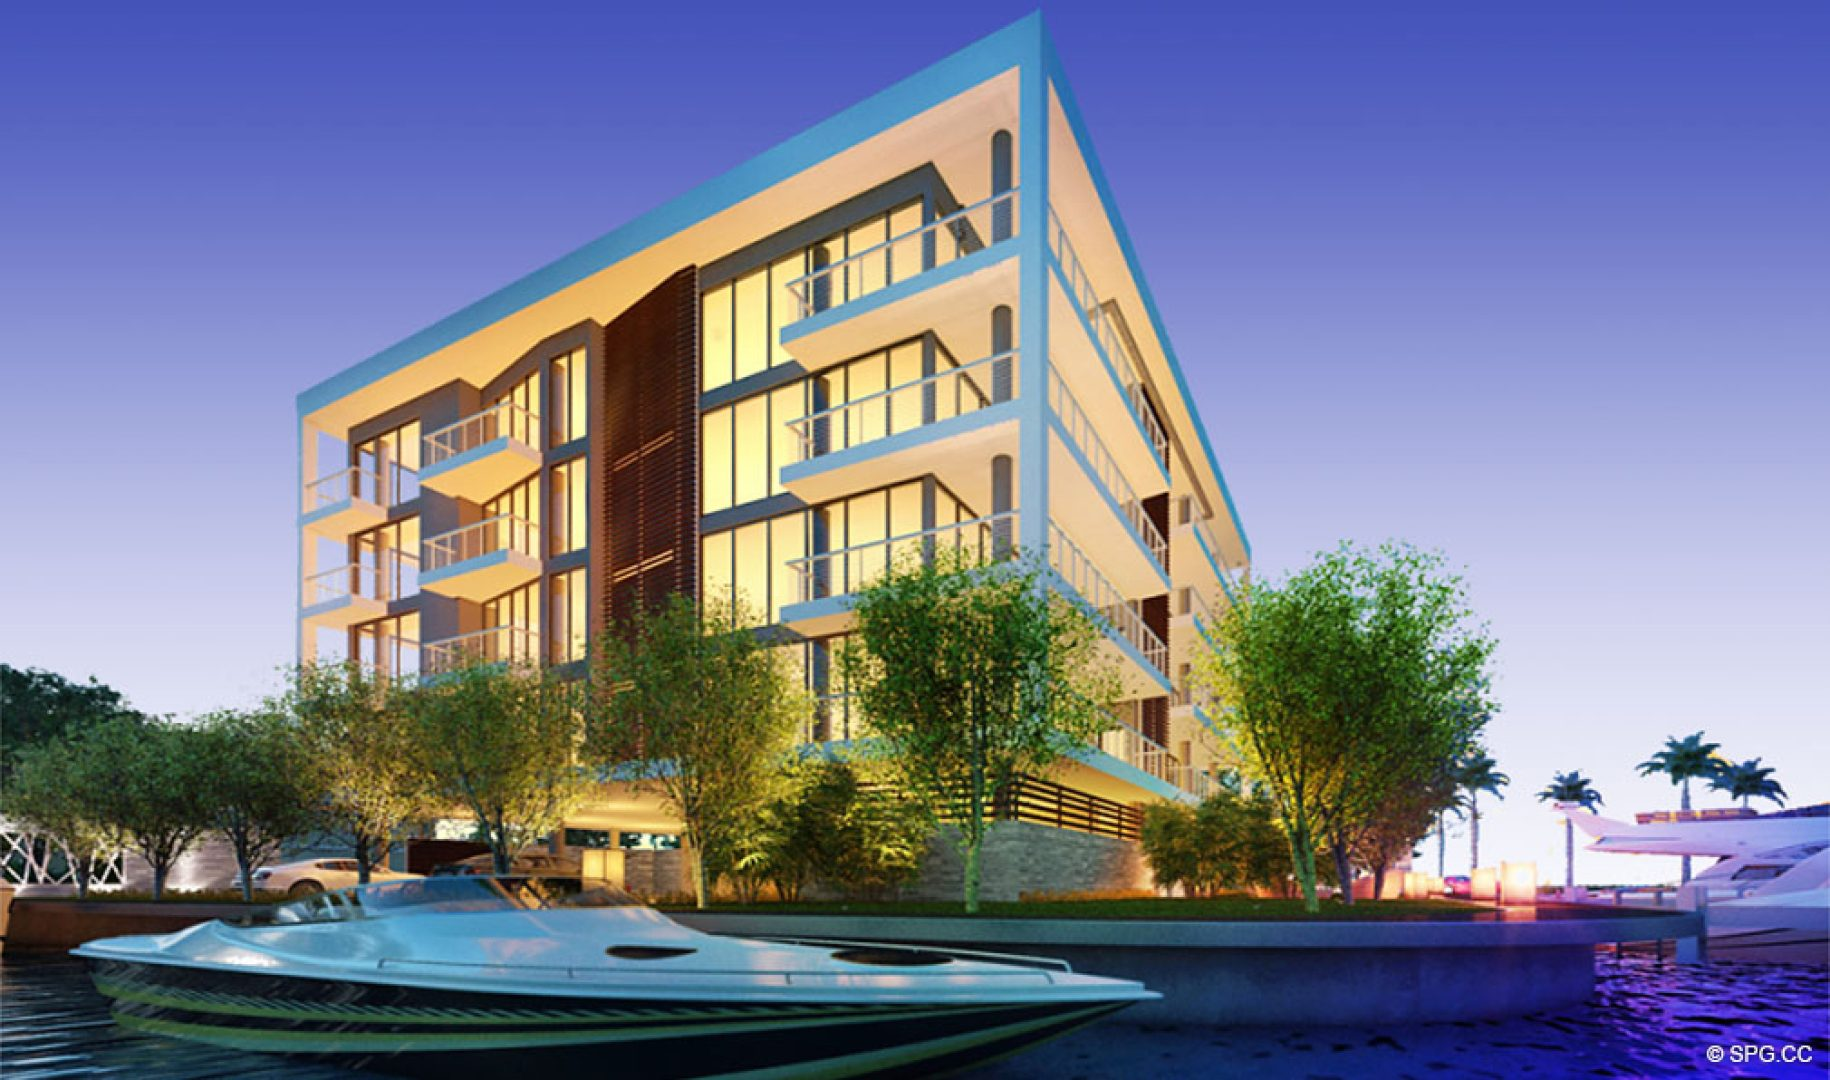 View of 1800 Las Olas from the Intracoastal, Luxury Waterfront Condos in Fort Lauderdale, Florida 33301